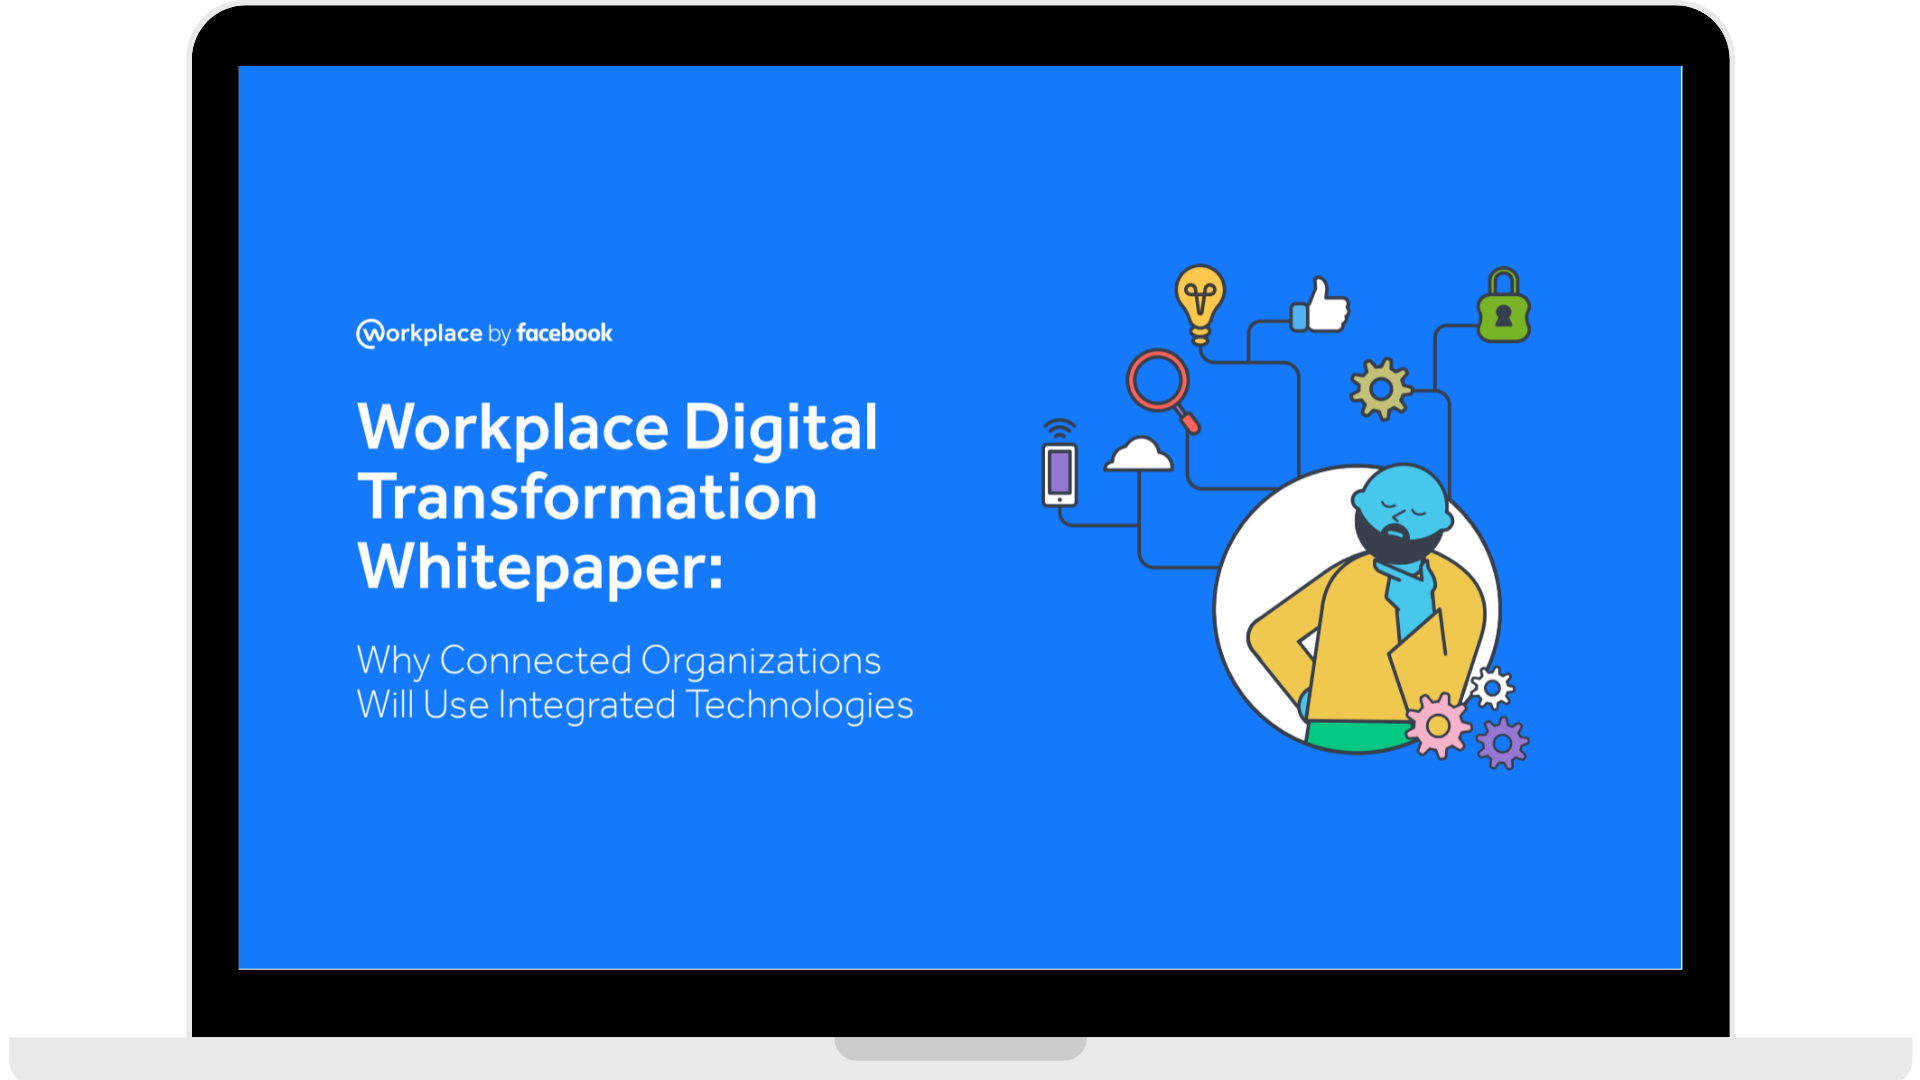 WPF - Whitepaper - Why Connected Organisations Will Use Integrated Technologies - Laptop - Transparent